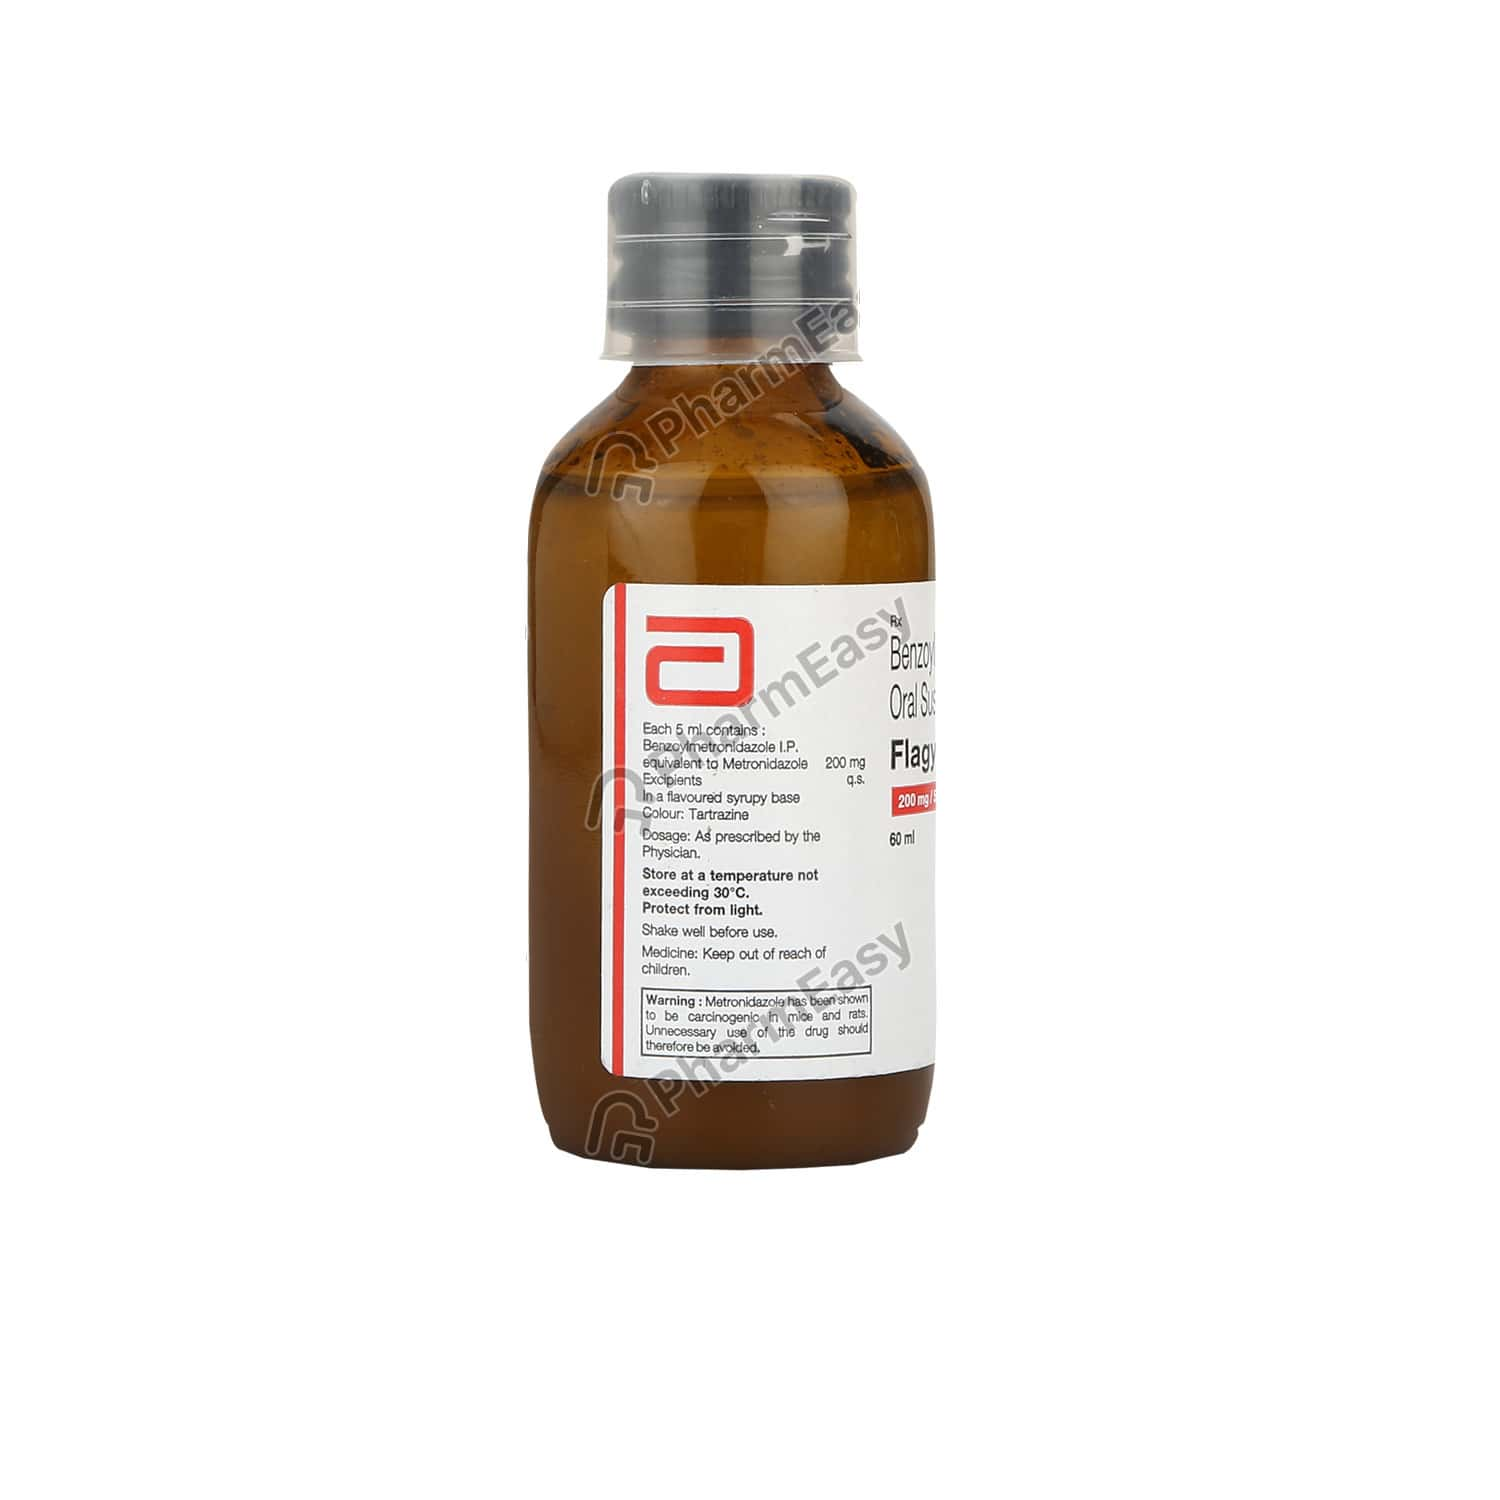 Flagyl 200mg Susp 60ml